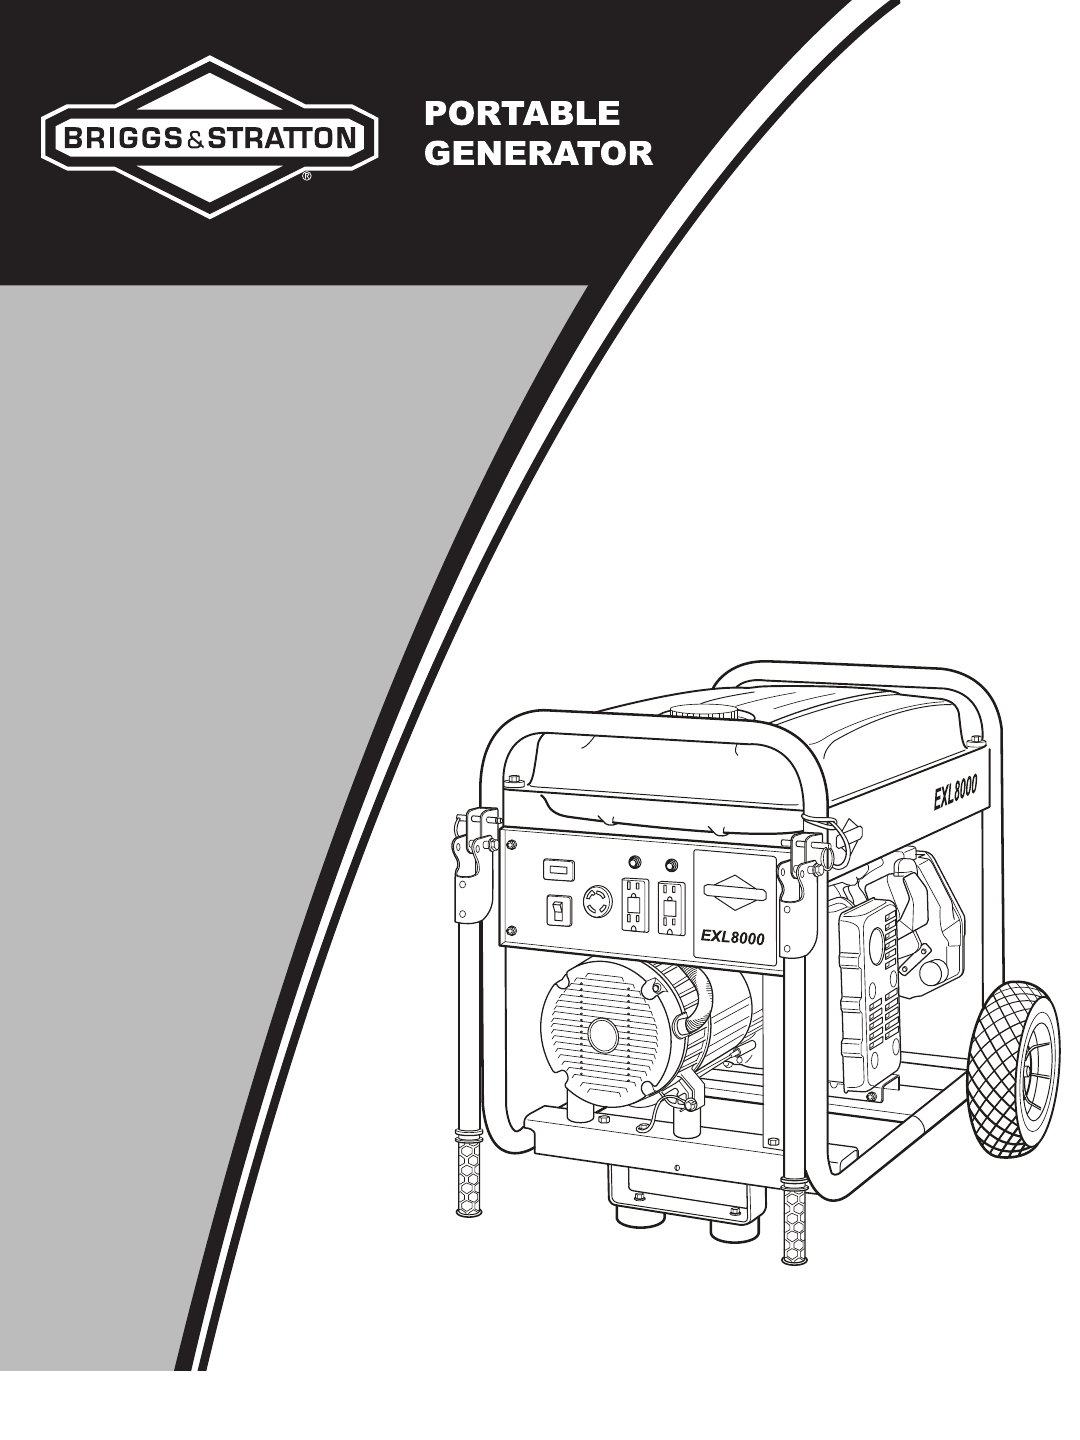 Briggs stratton portable generator 030244 02 user guide questions help is just a moment away swarovskicordoba Image collections